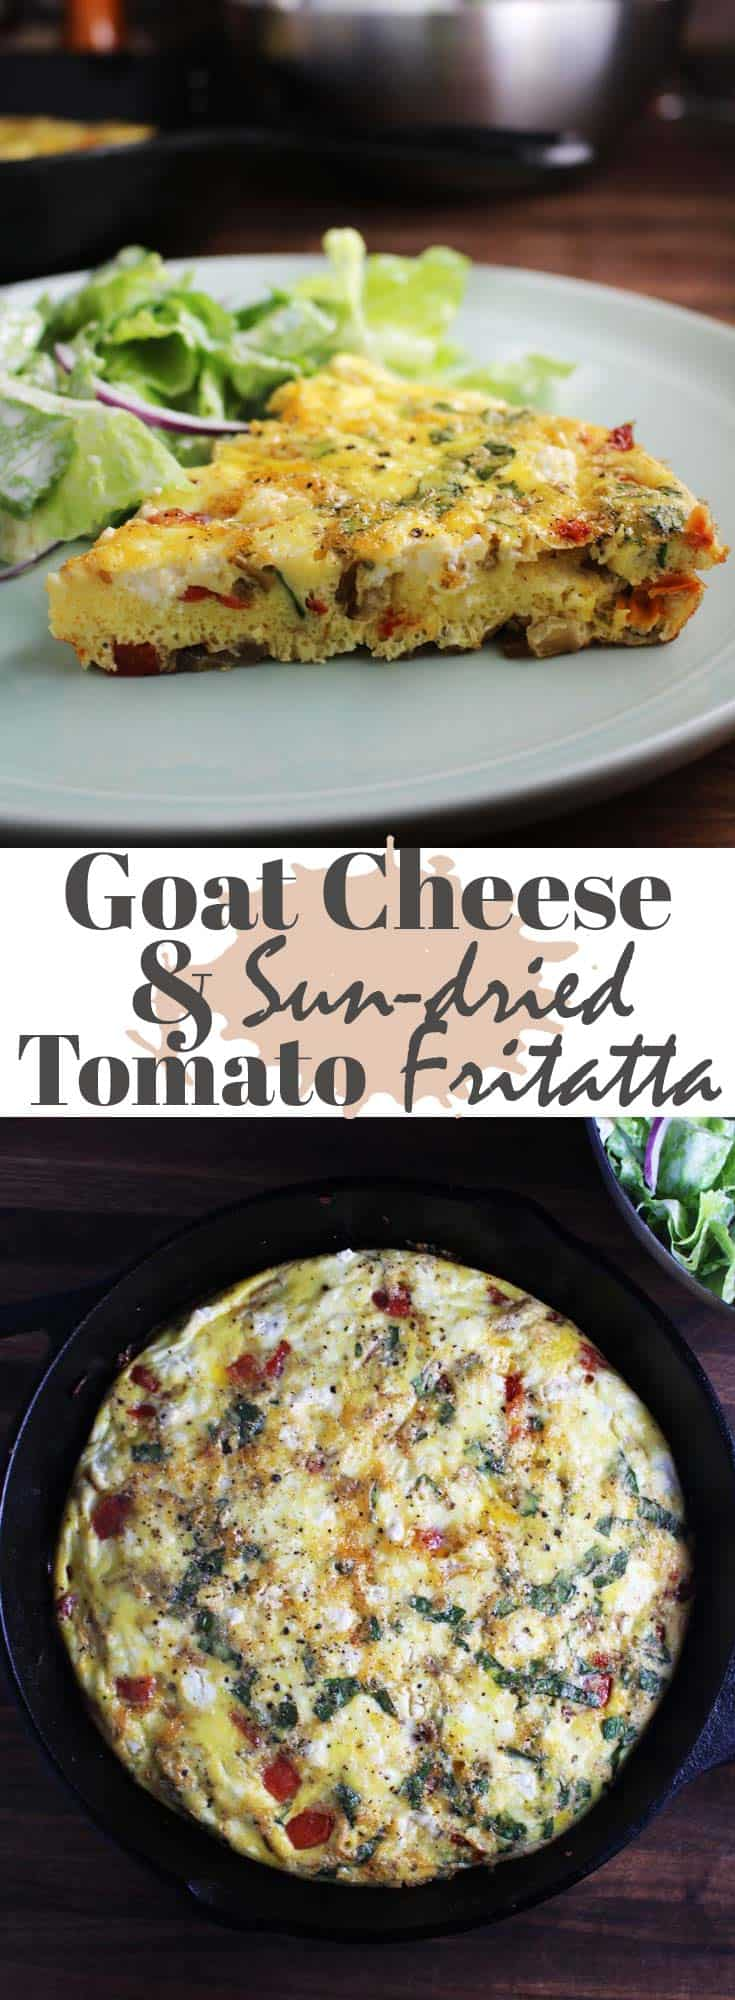 This easy frittata recipe is made with tangy goat cheese, sweet sun-dried tomatoes and basil. You can whip it up in 15 minutes, for a healthy brunch or a light dinner! #brunch #breakfast #lunch #easyrecipes